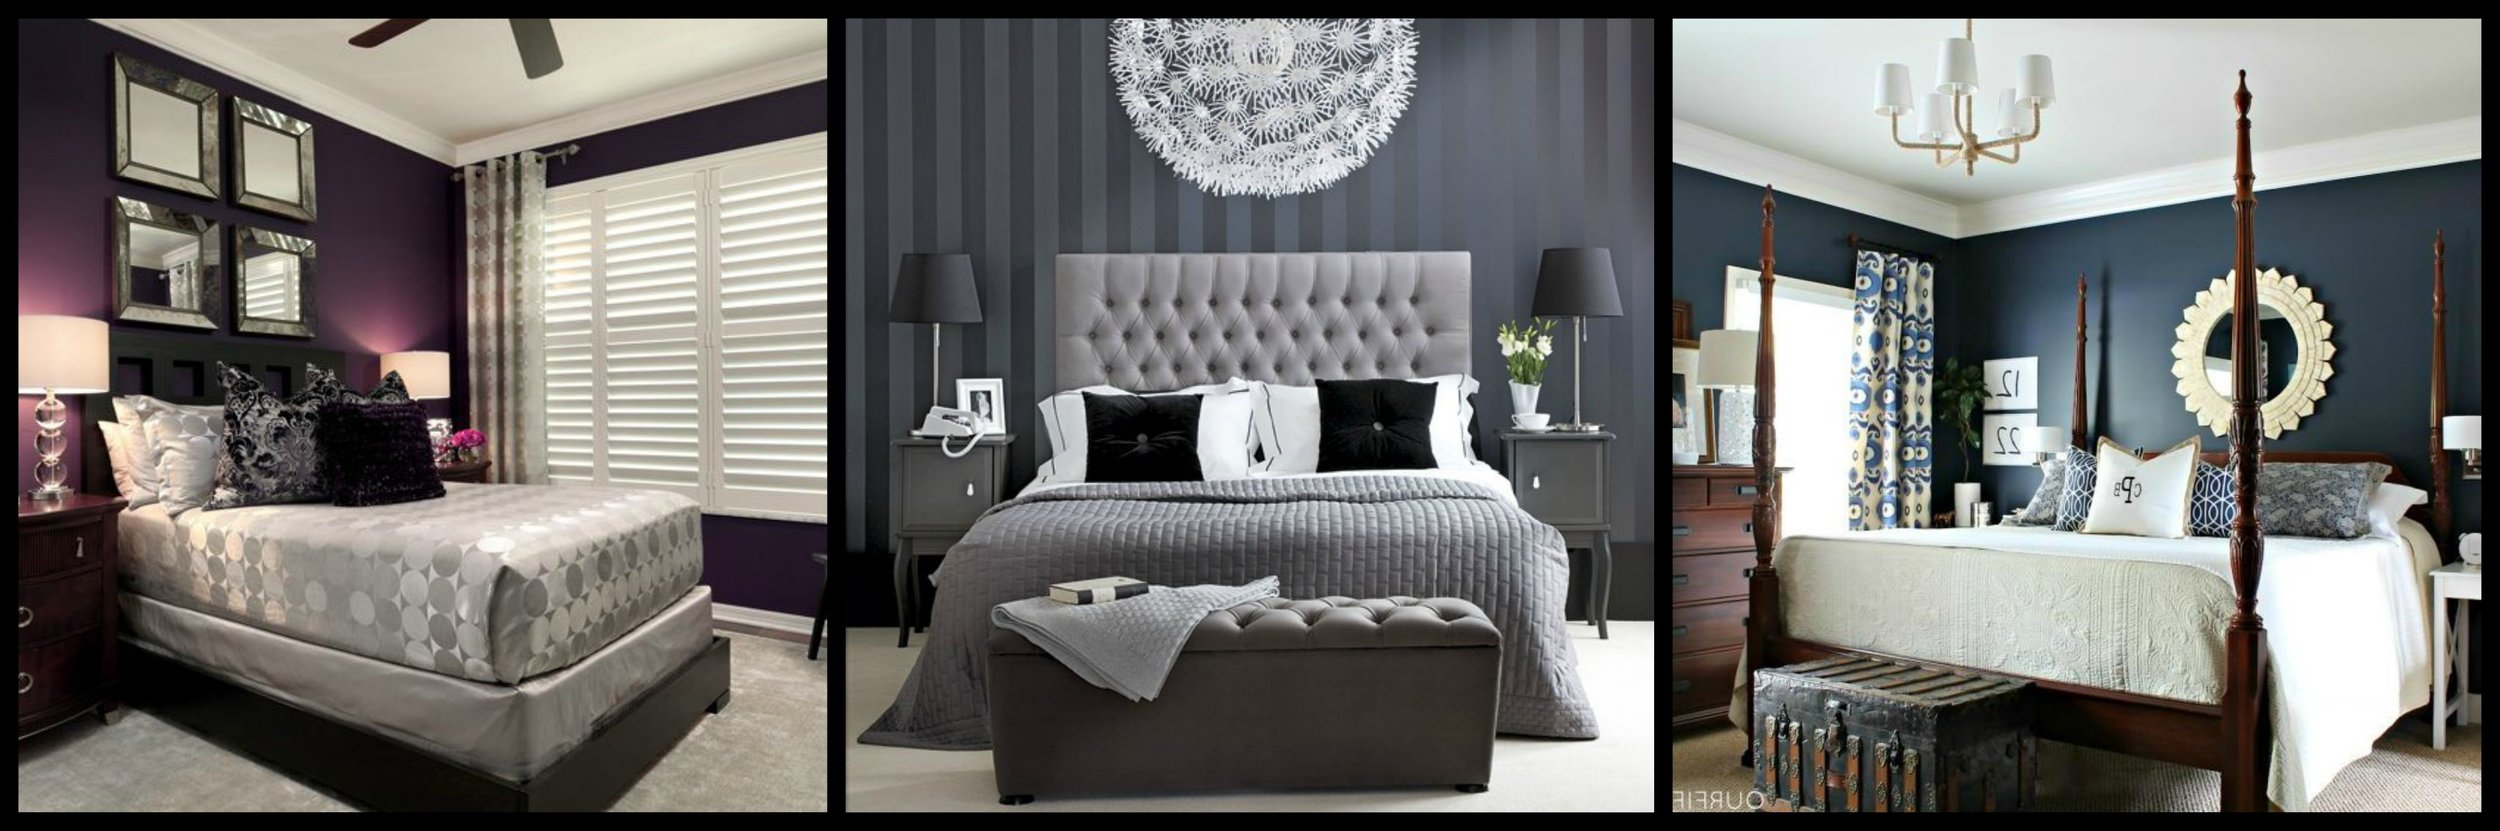 Dark wall colors add drama, calm, and tranquility to lull your conscious mind to prepare for slumber.